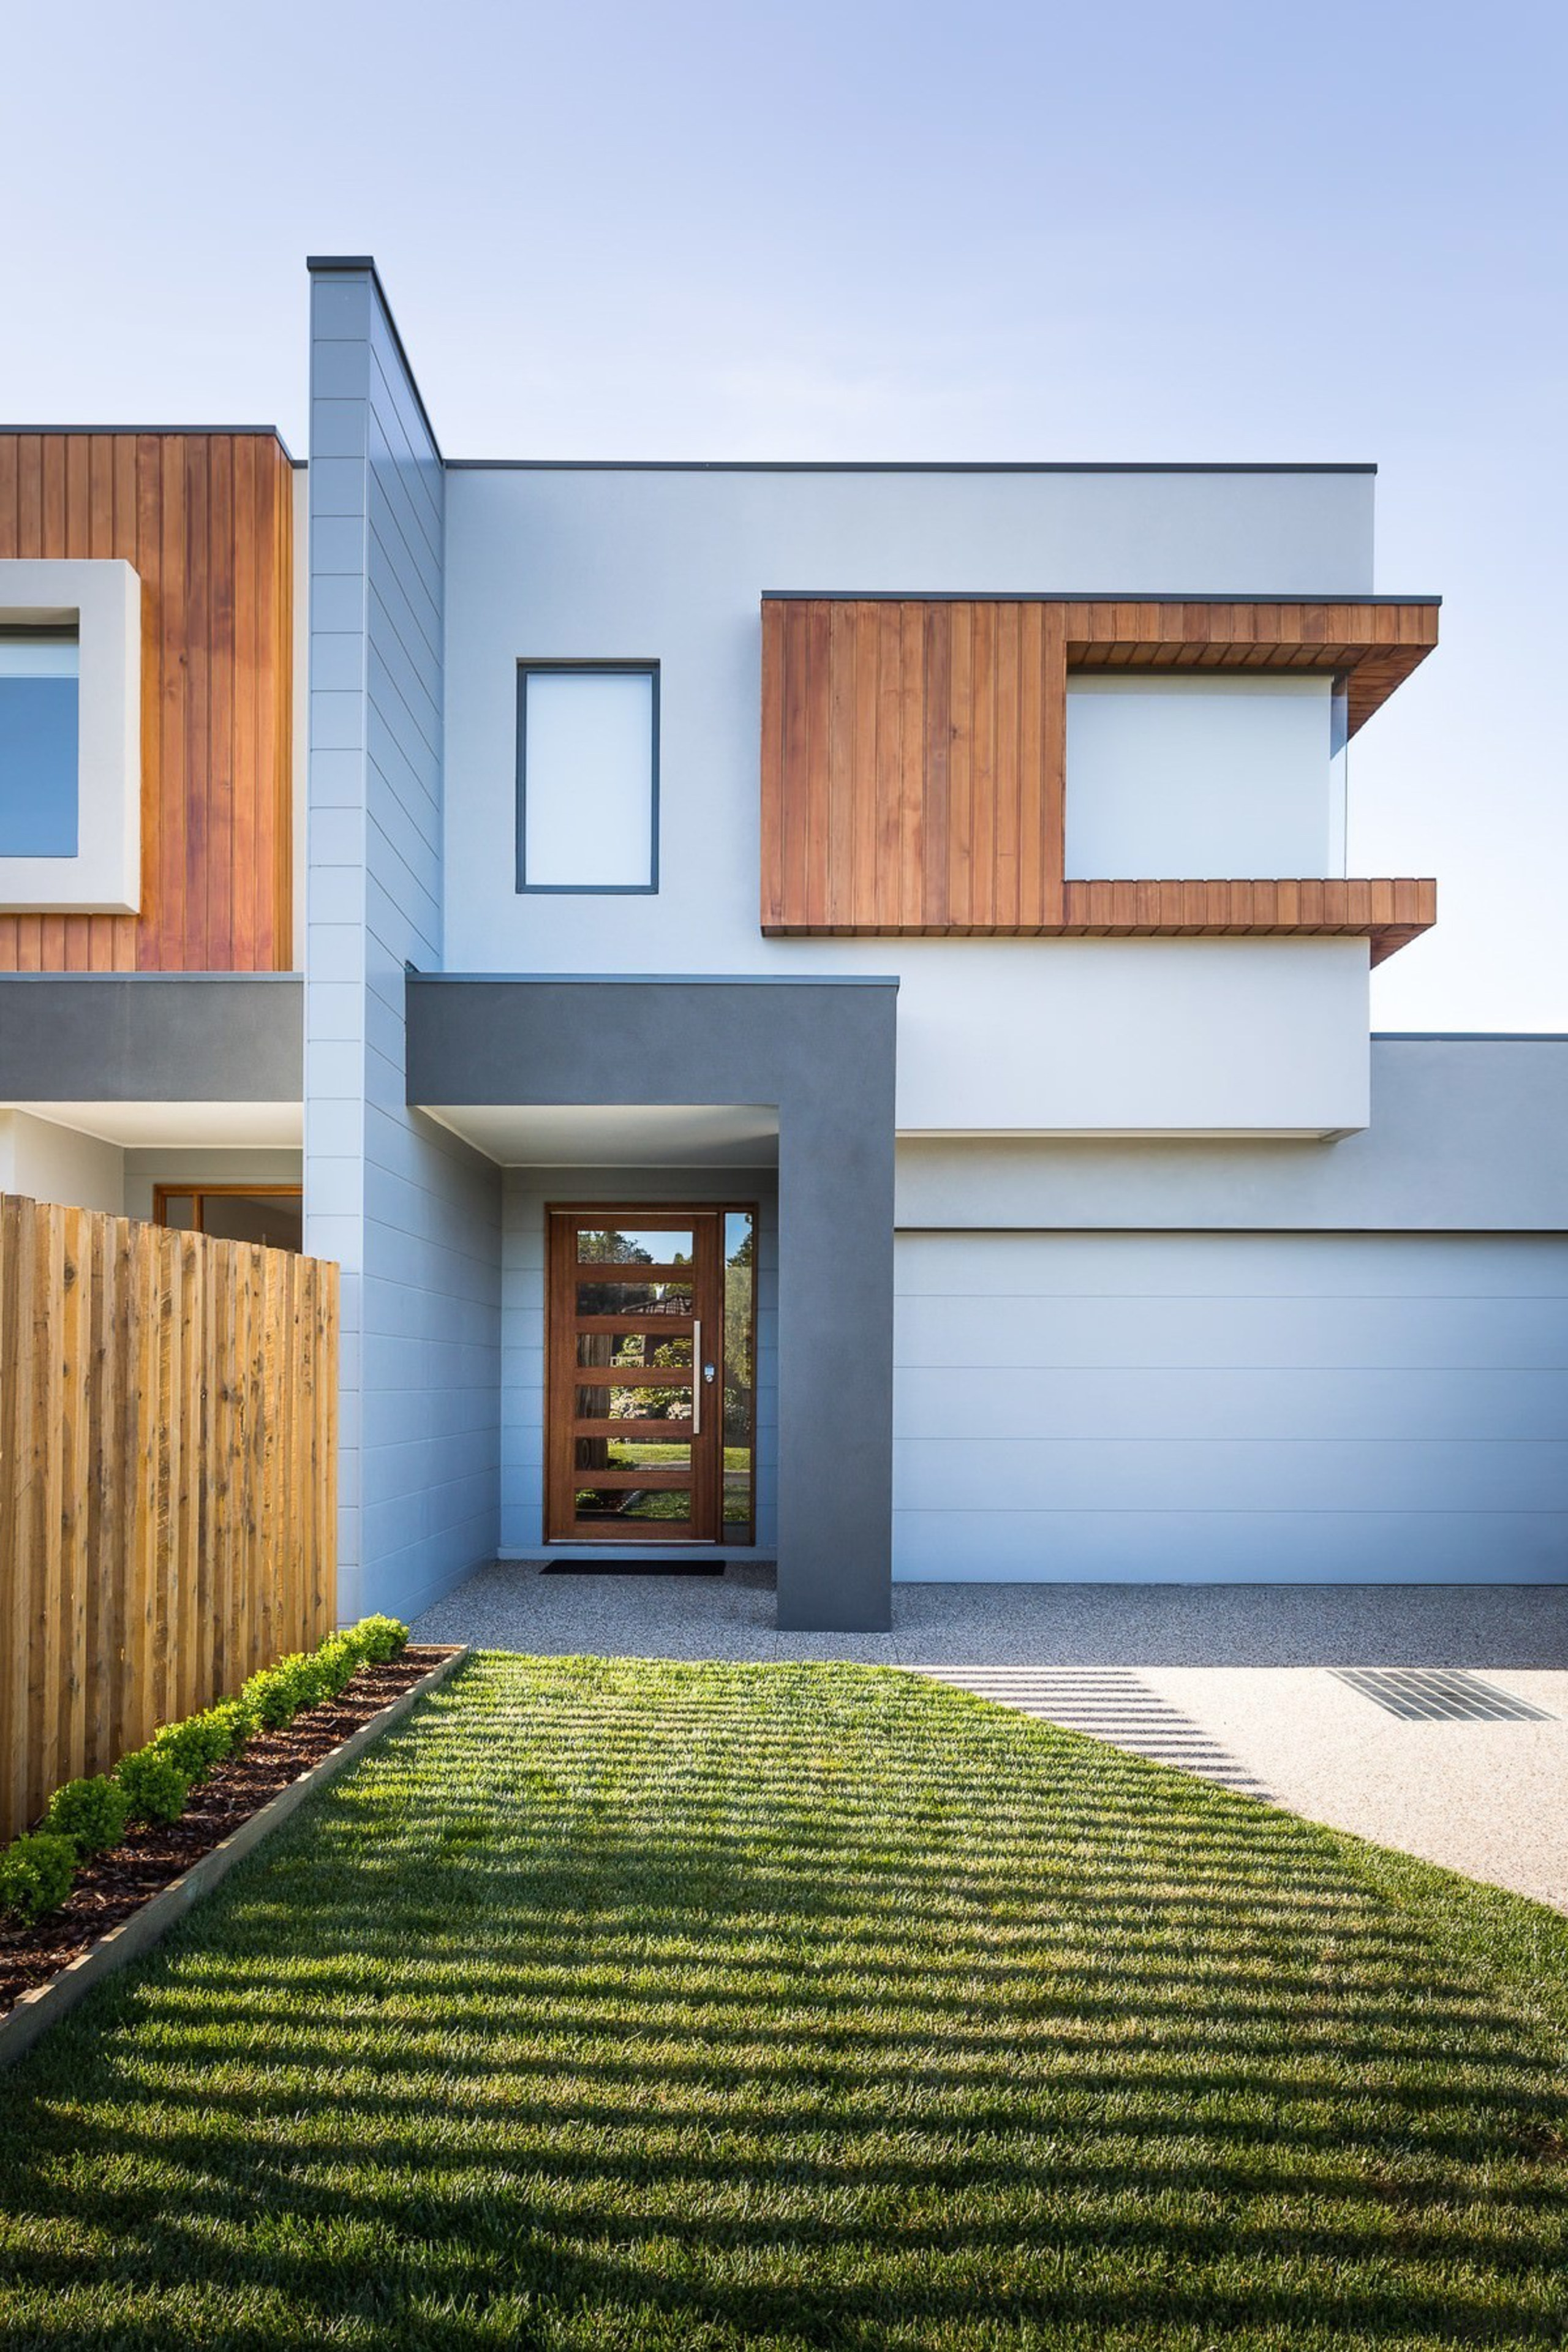 This studio is adept at crafting dual occupancy architecture, building, elevation, estate, facade, home, house, property, real estate, residential area, window, teal